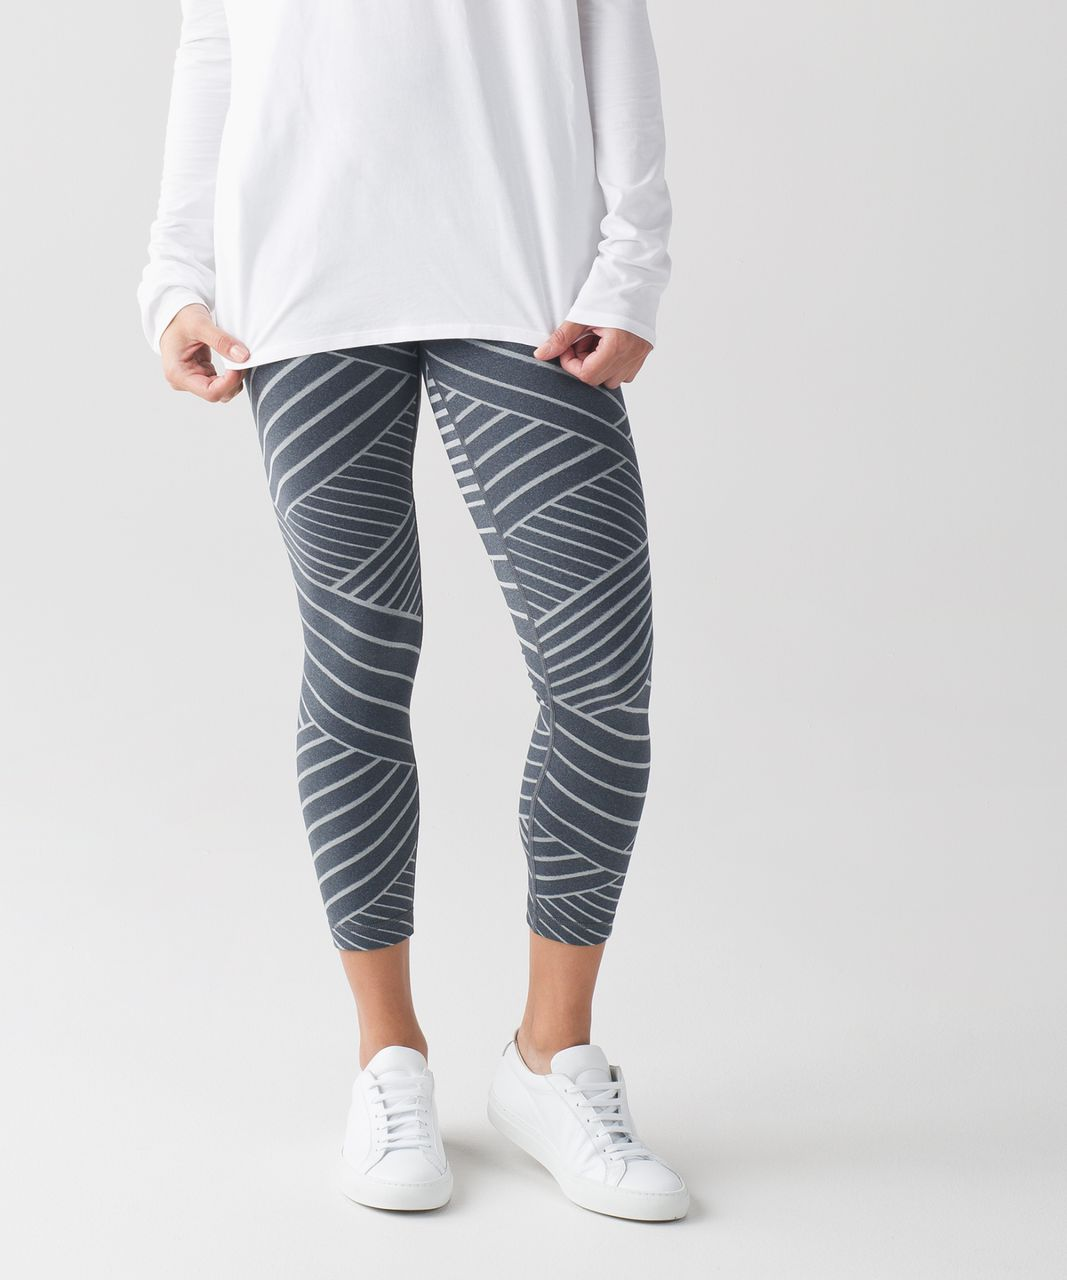 Lululemon High Times Pant - Luon Metallic Lumatrix Heathered Deep Coal Silver